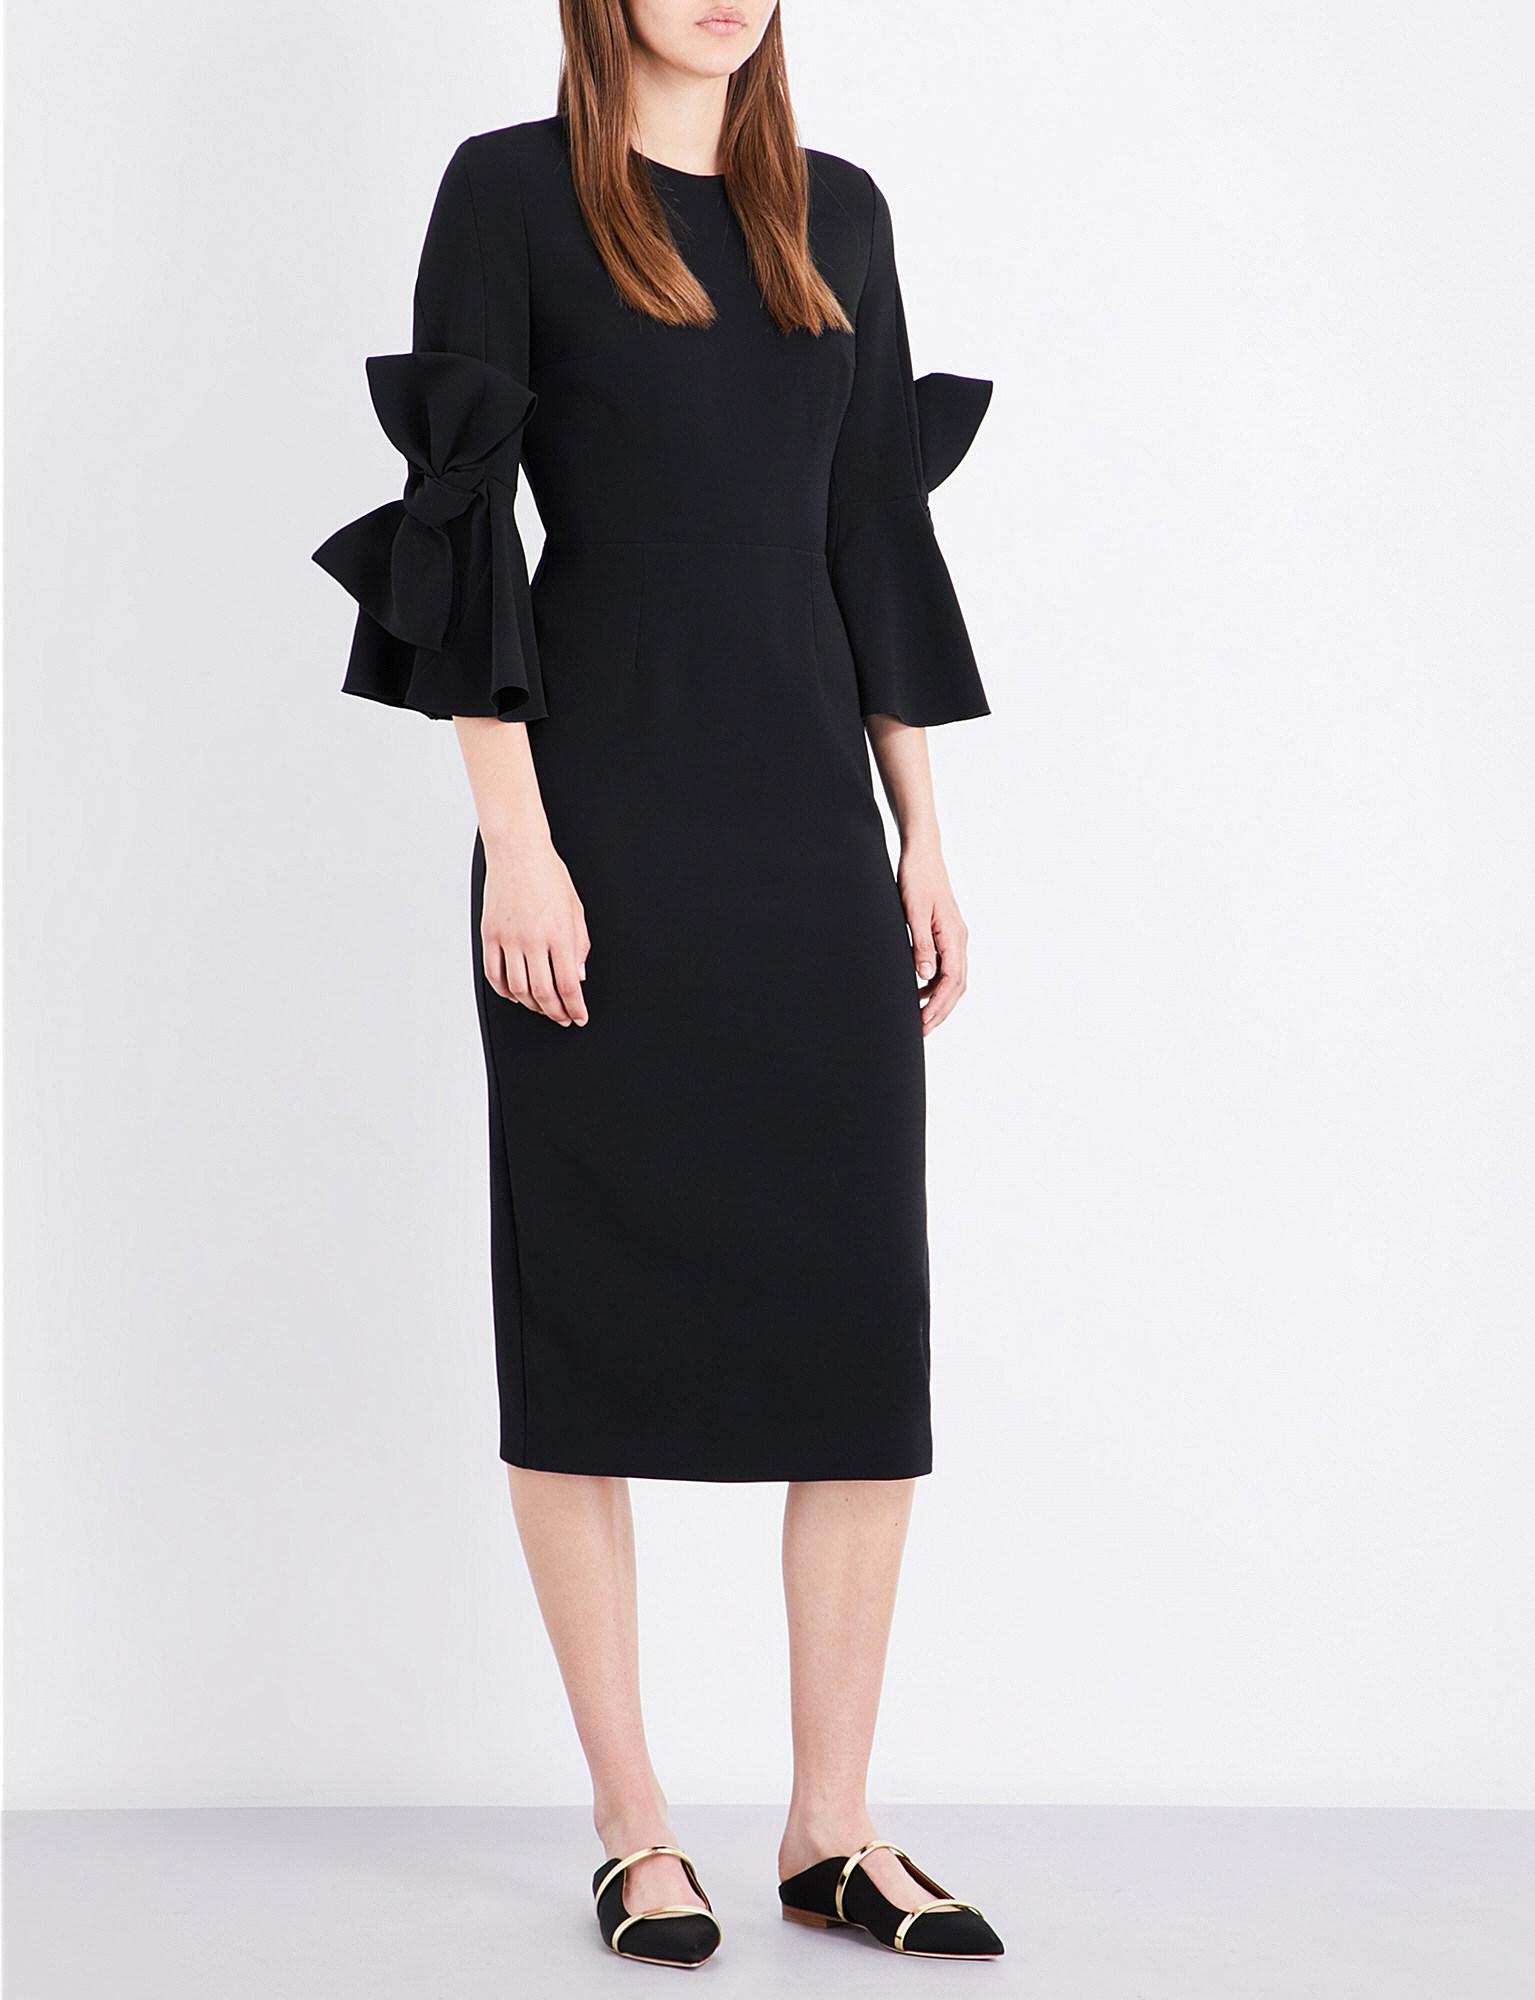 Aylin bell-cuff stretch-crepe dress Roksanda Ilincic